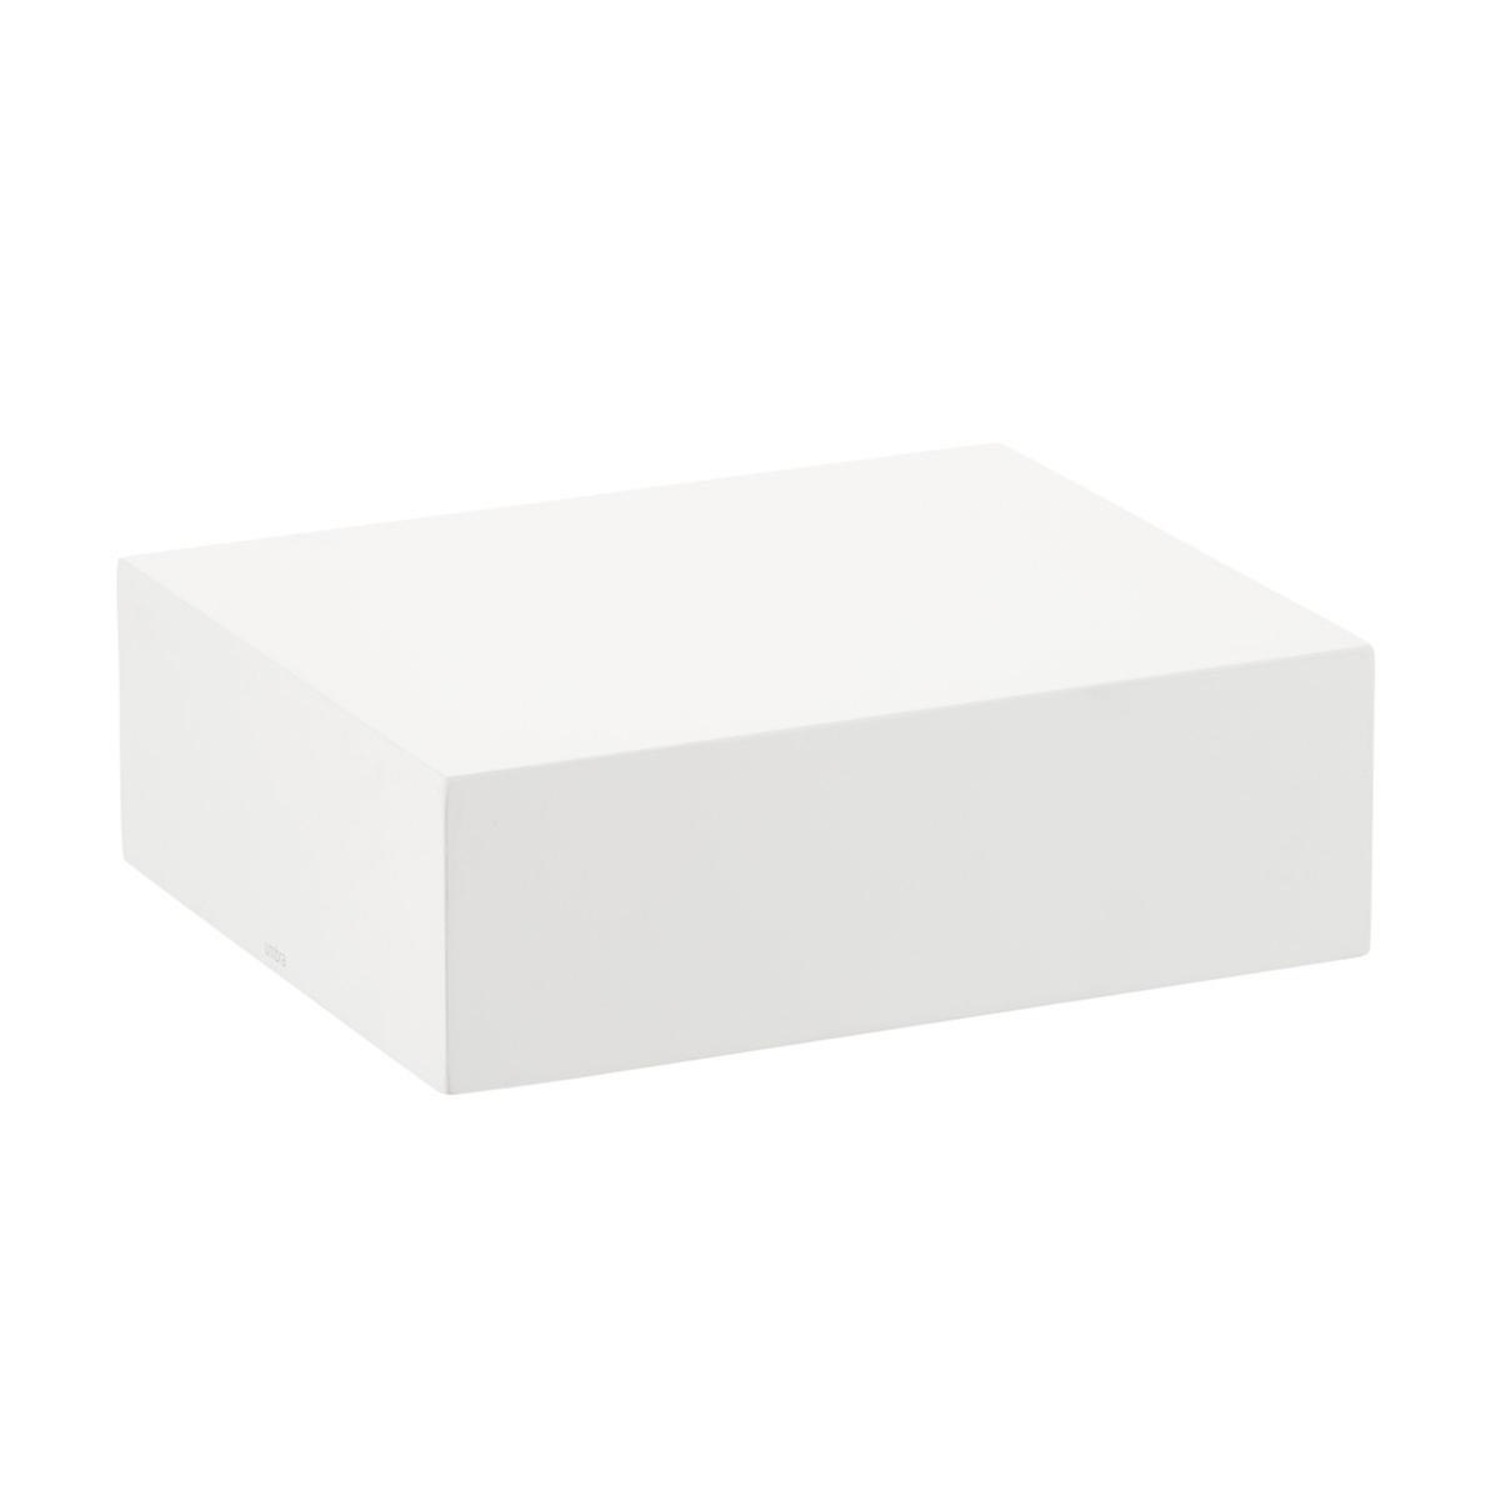 Umbra Sleek White Floating Wall Shelf